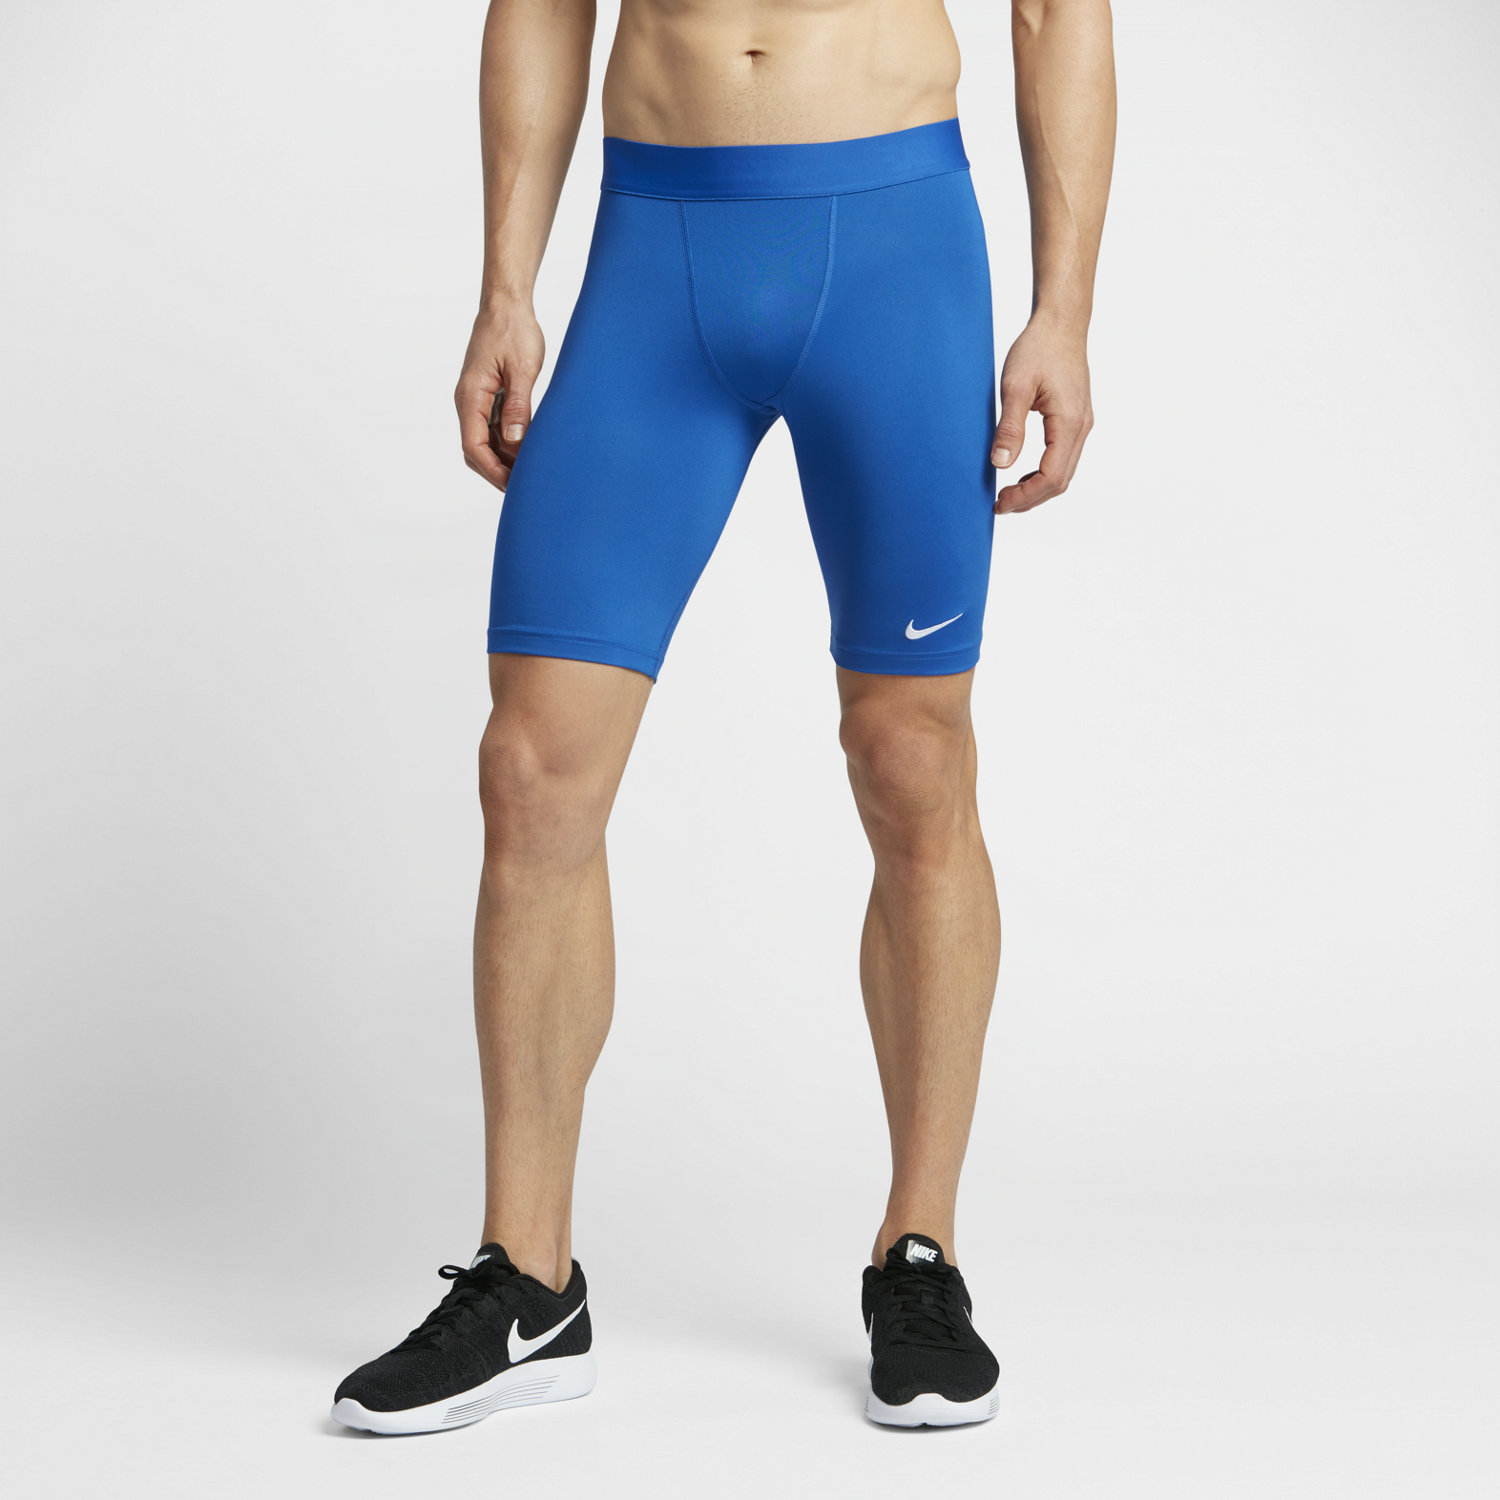 Men's Running Shorts. Nike.com